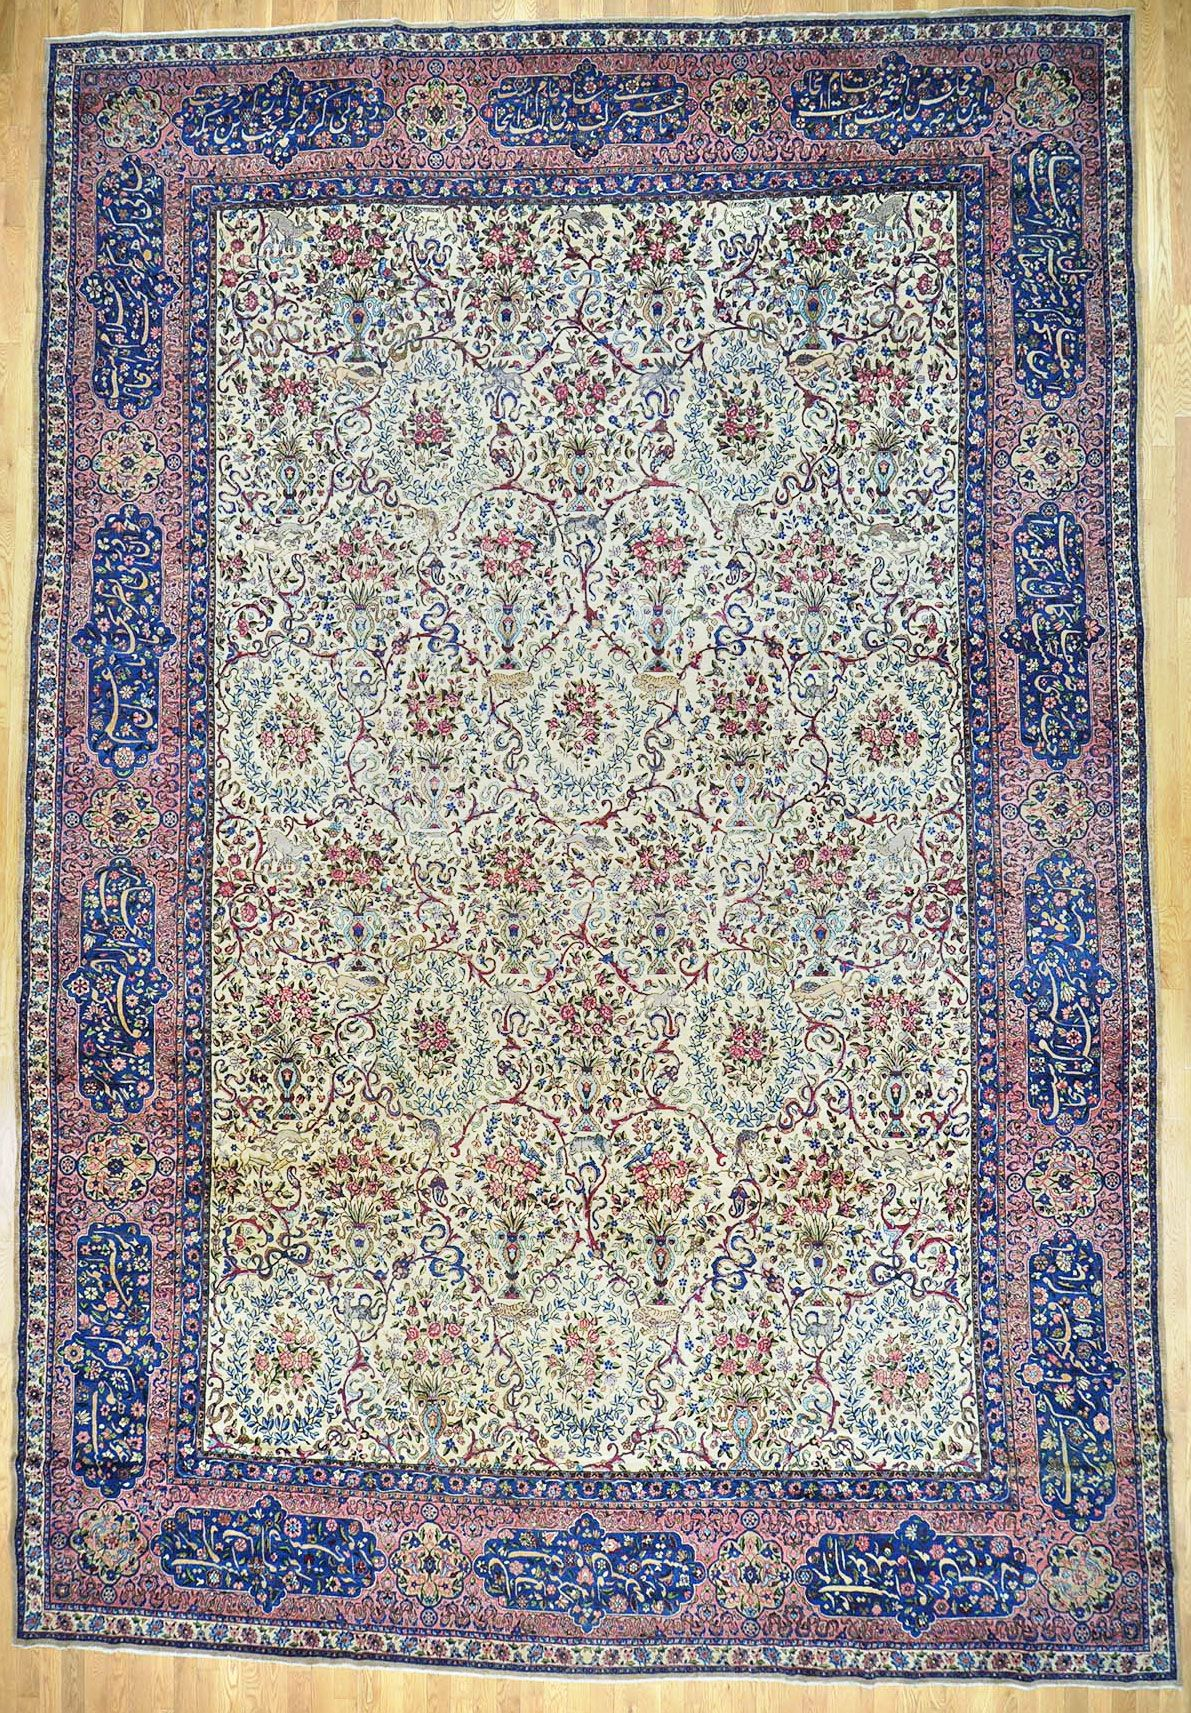 Antique Kerman Persian Rug Authentic Handmade 70 90